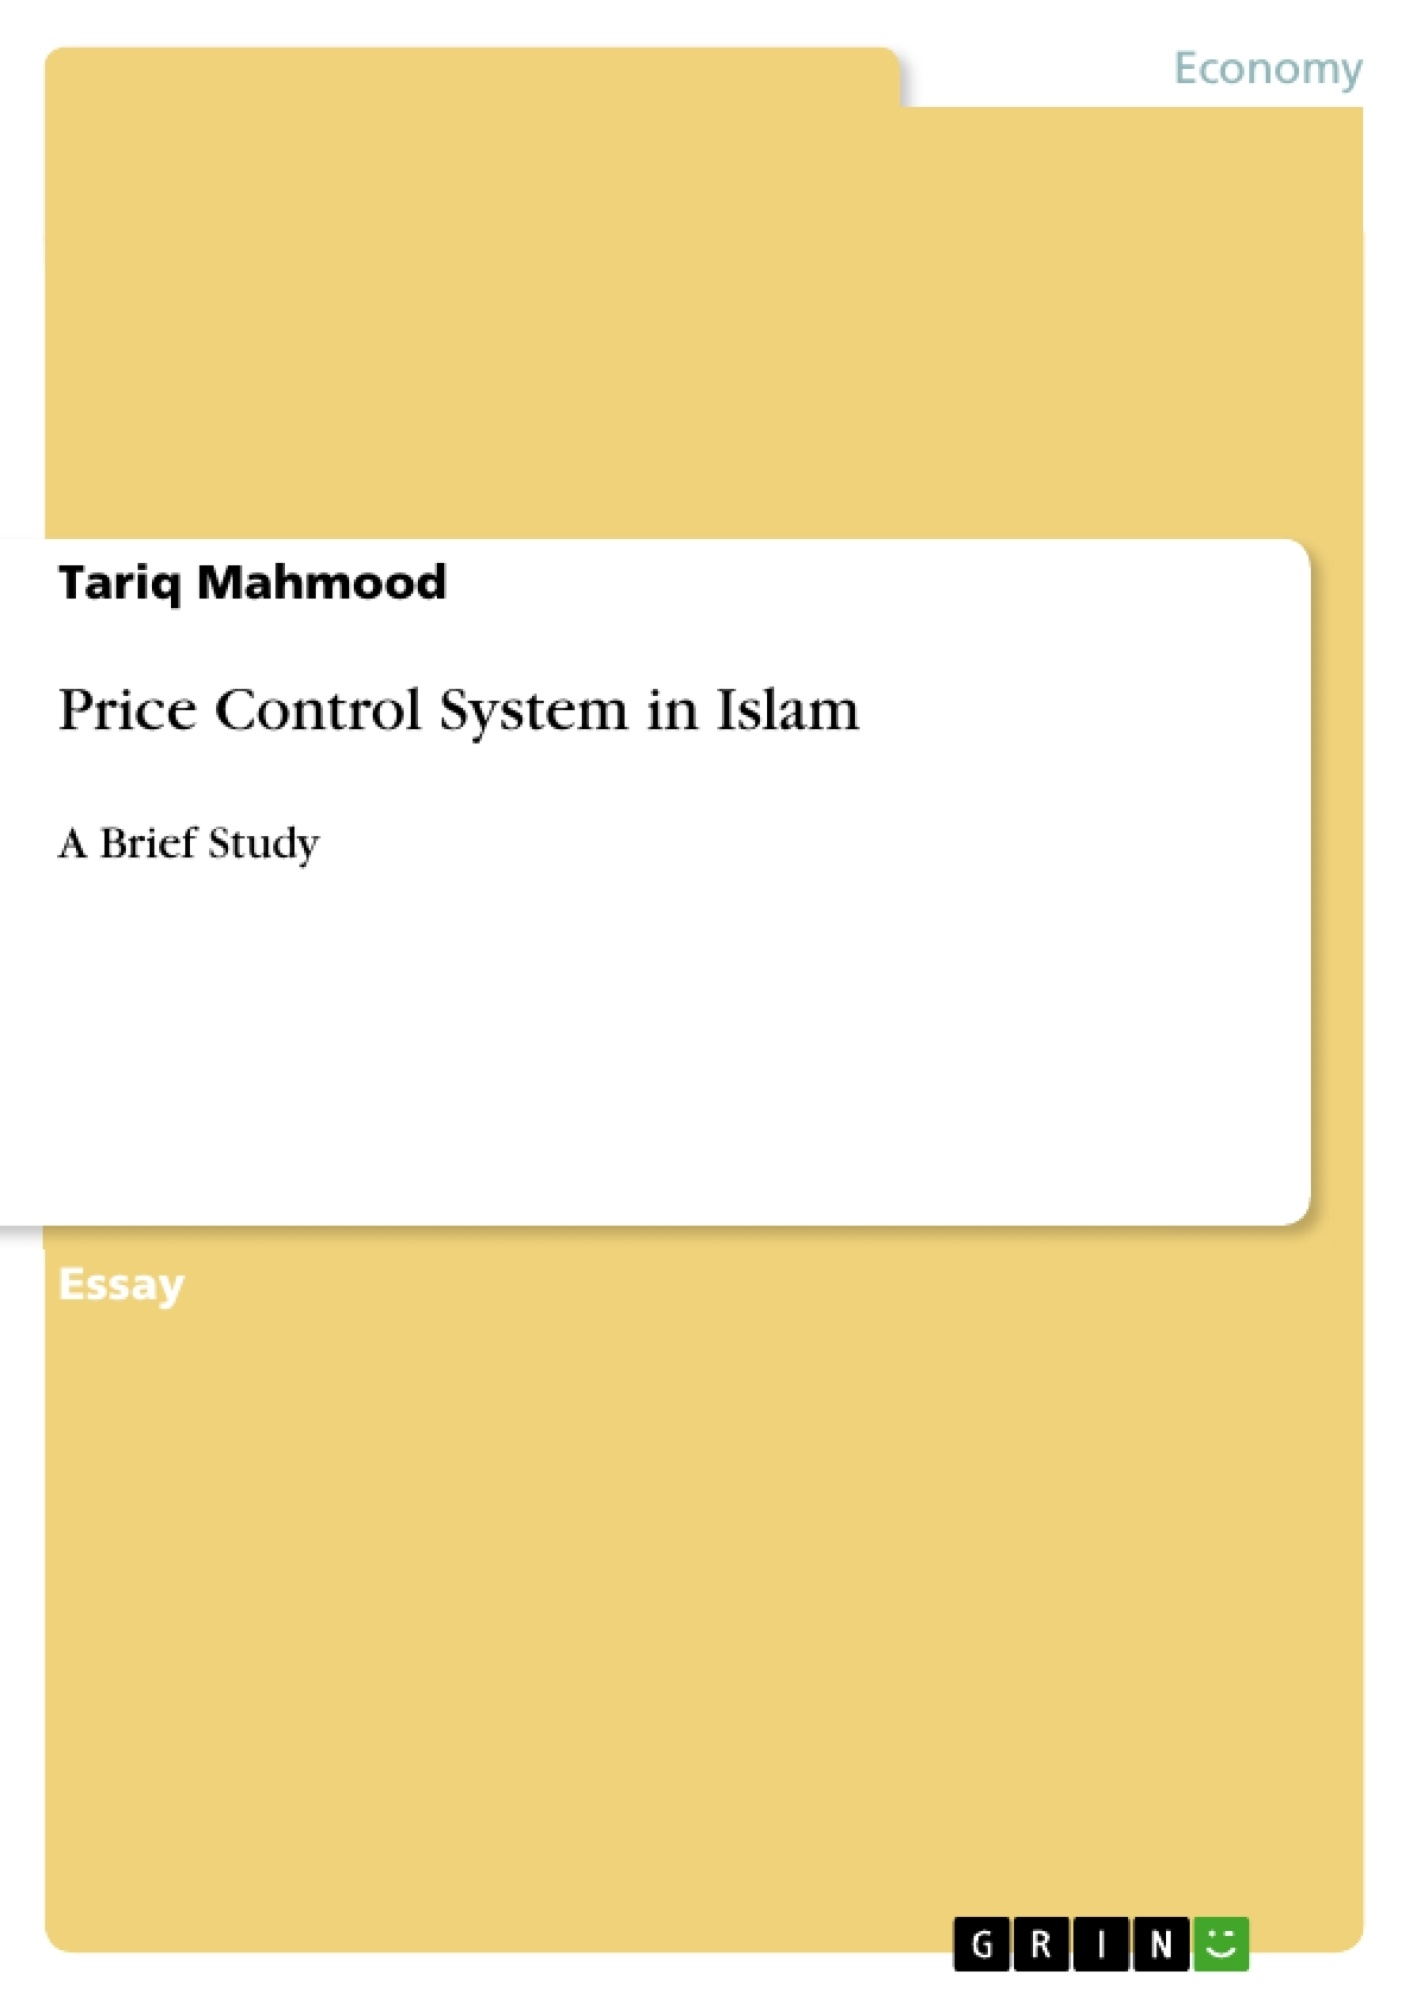 Title: Price Control System in Islam